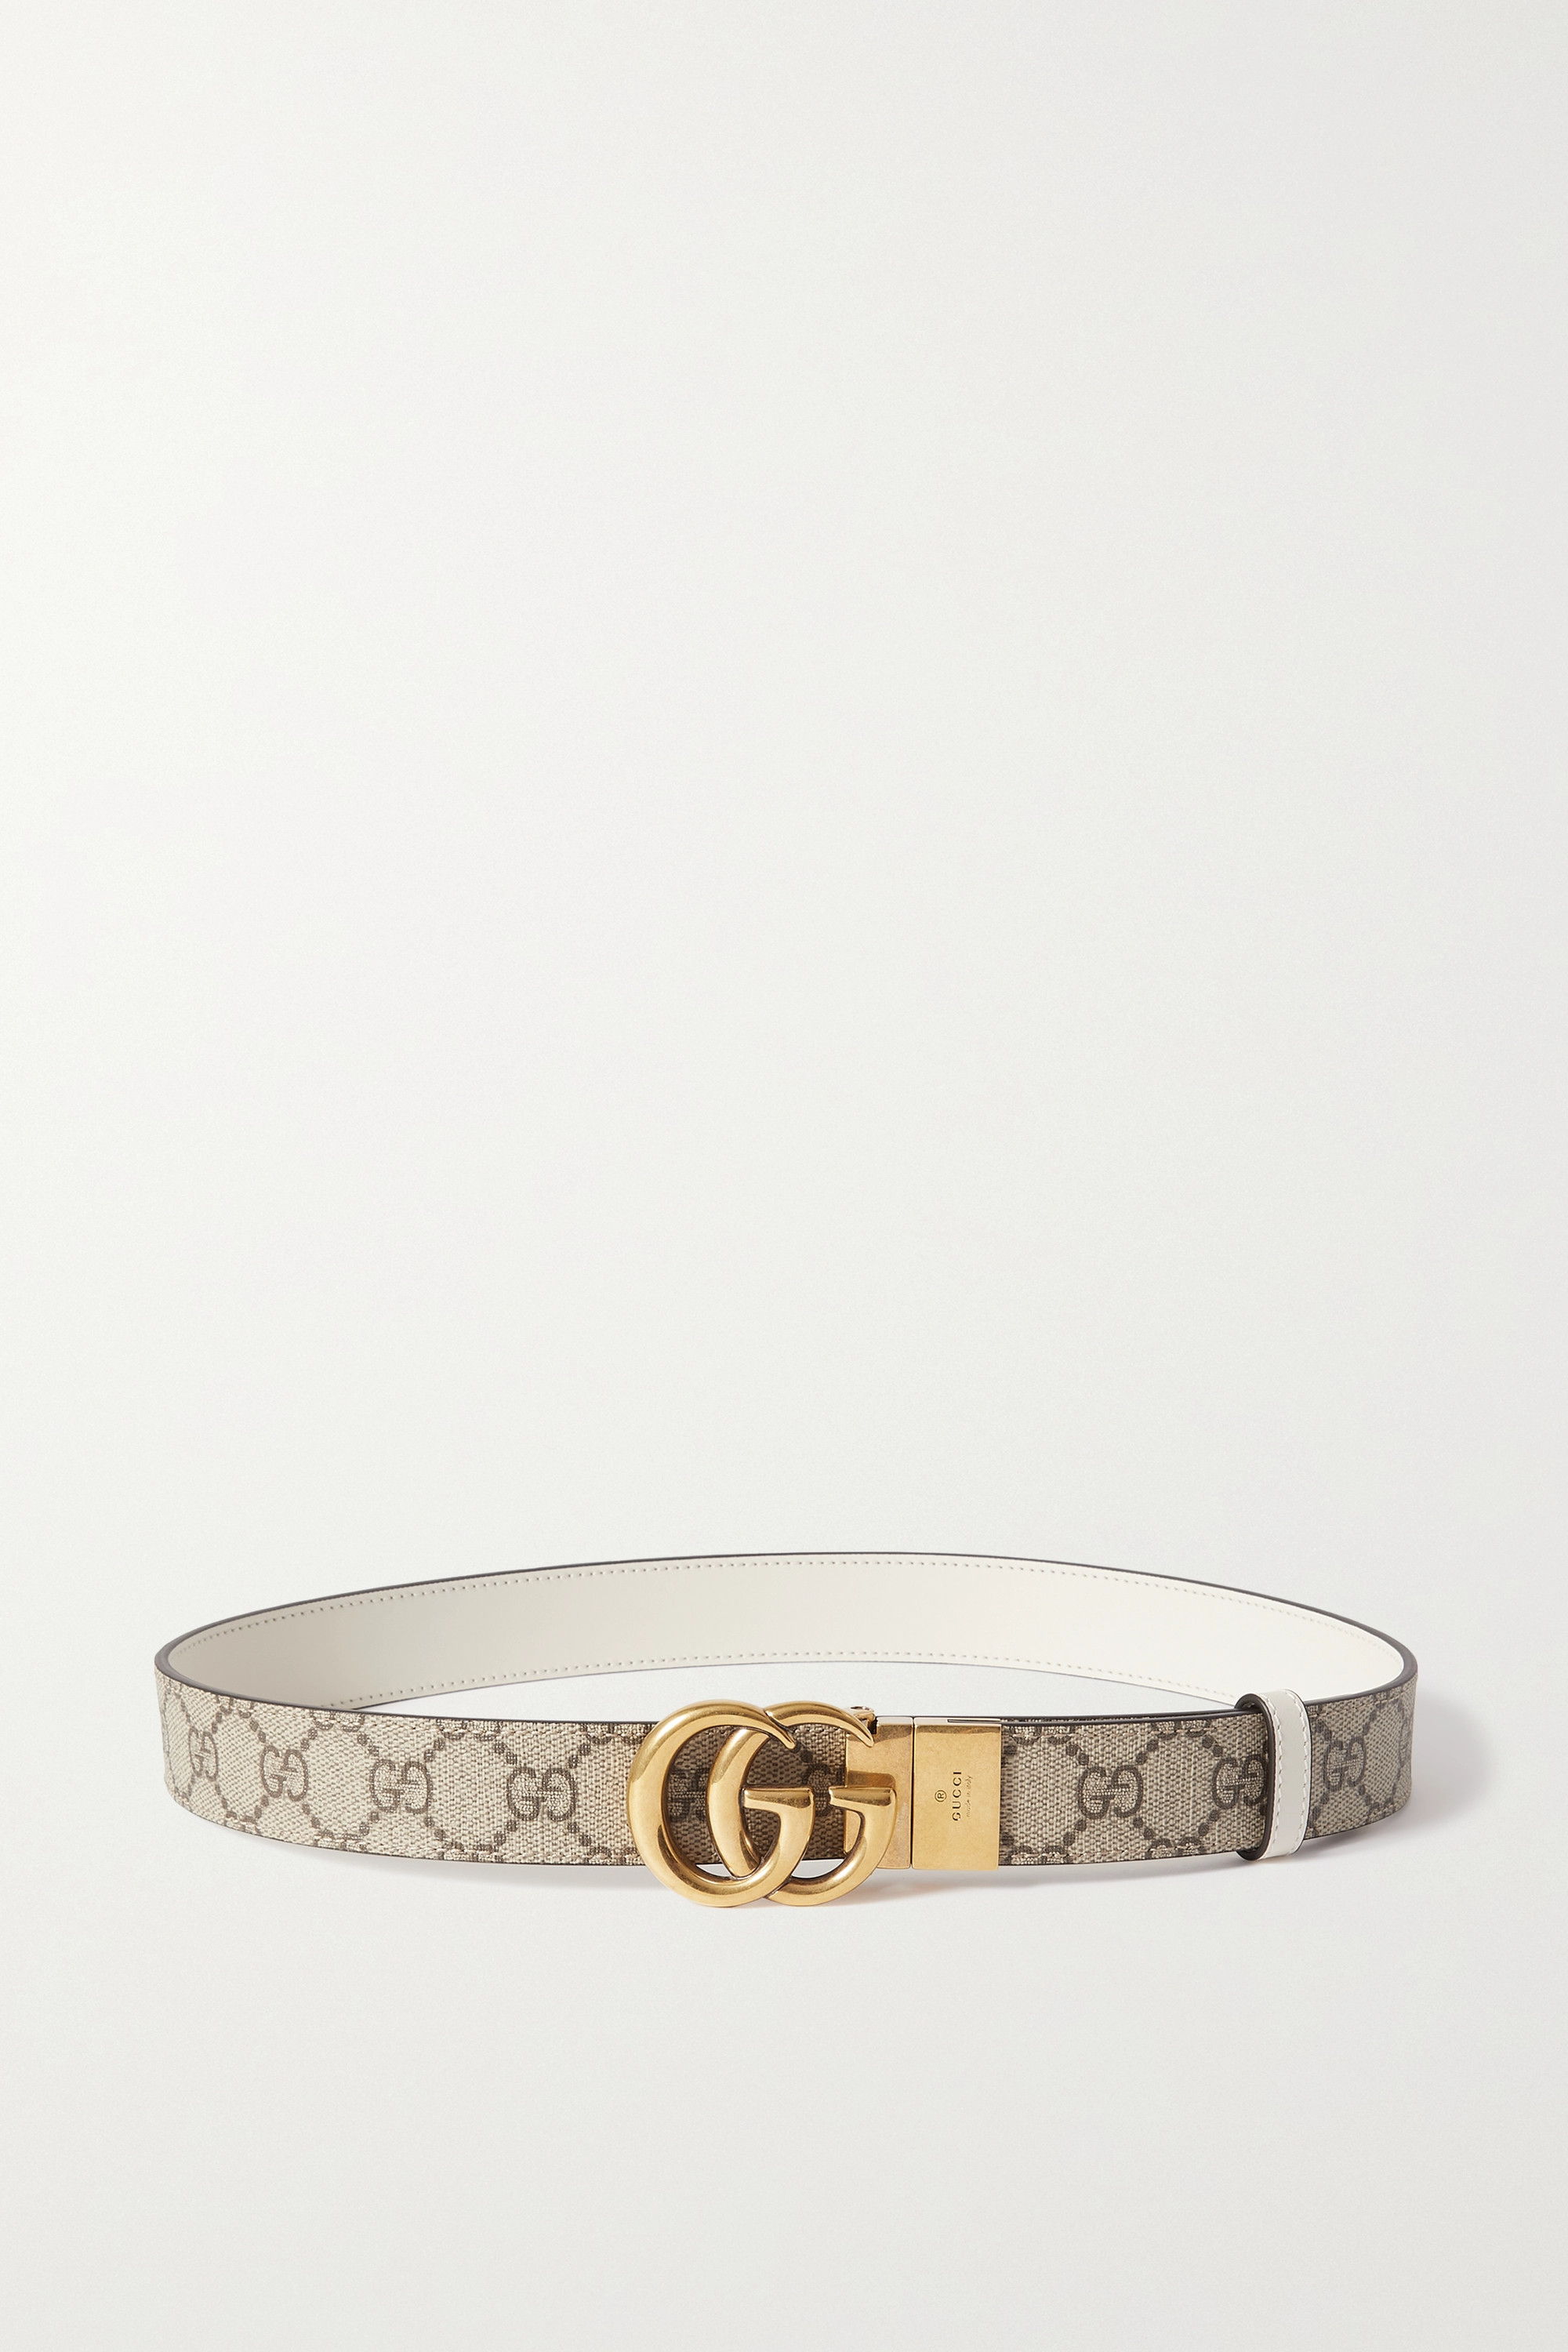 Gucci - Reversible leather and printed coated-canvas belt